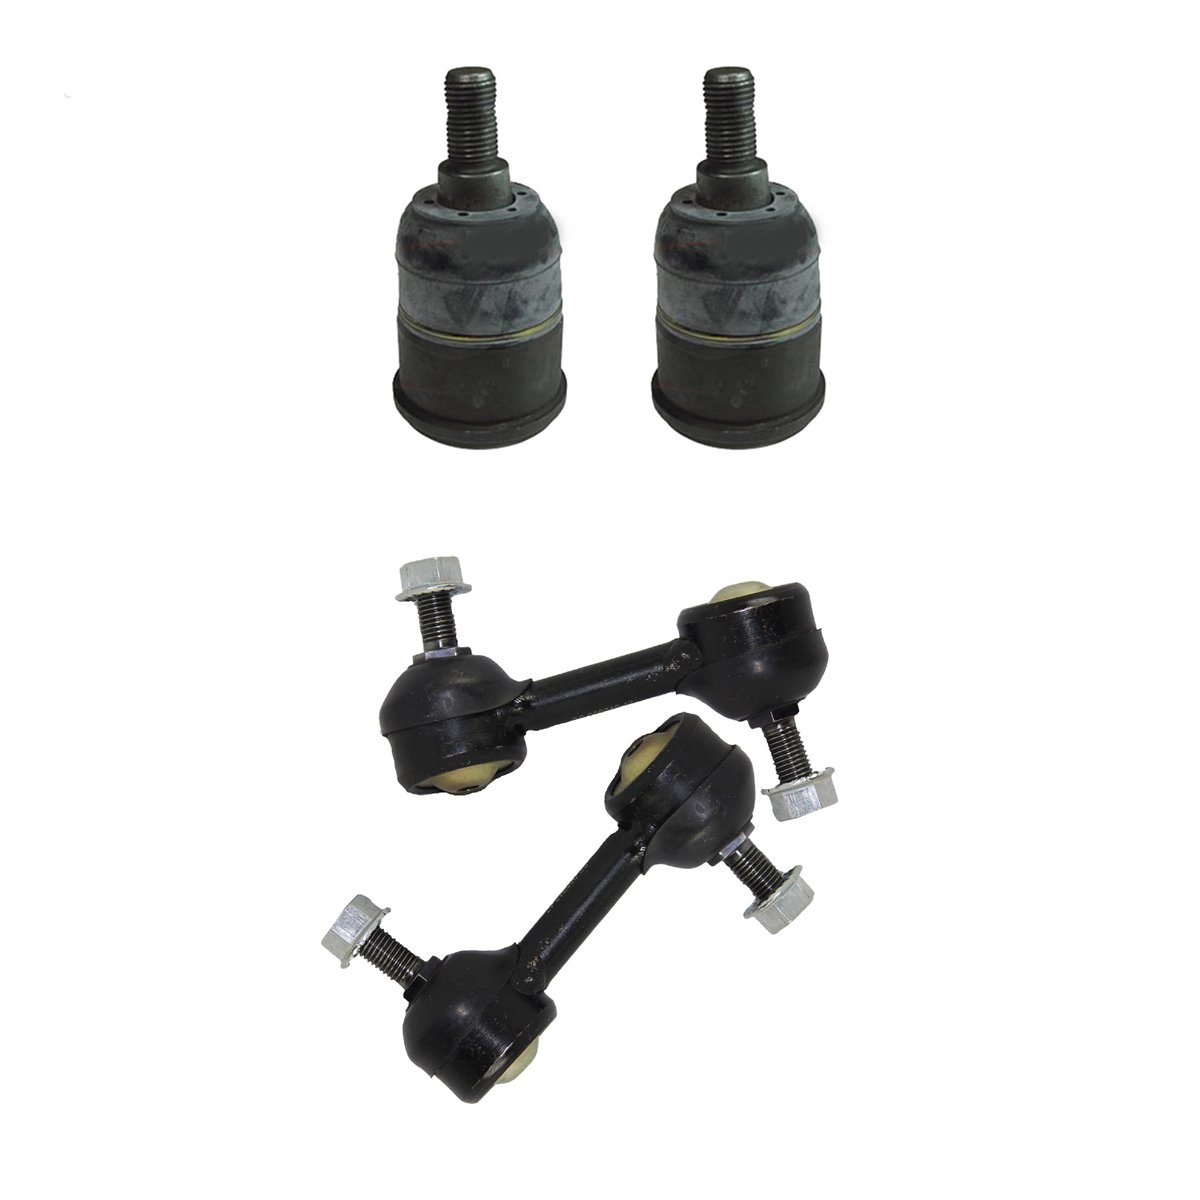 Detroit Axle - Complete 4pc Front Sway Bar Links and Lower Ball Joints Kit for 2009 2010 2011 2012 2013 2014 Acura TSX - [2008-2012 Honda Accord]